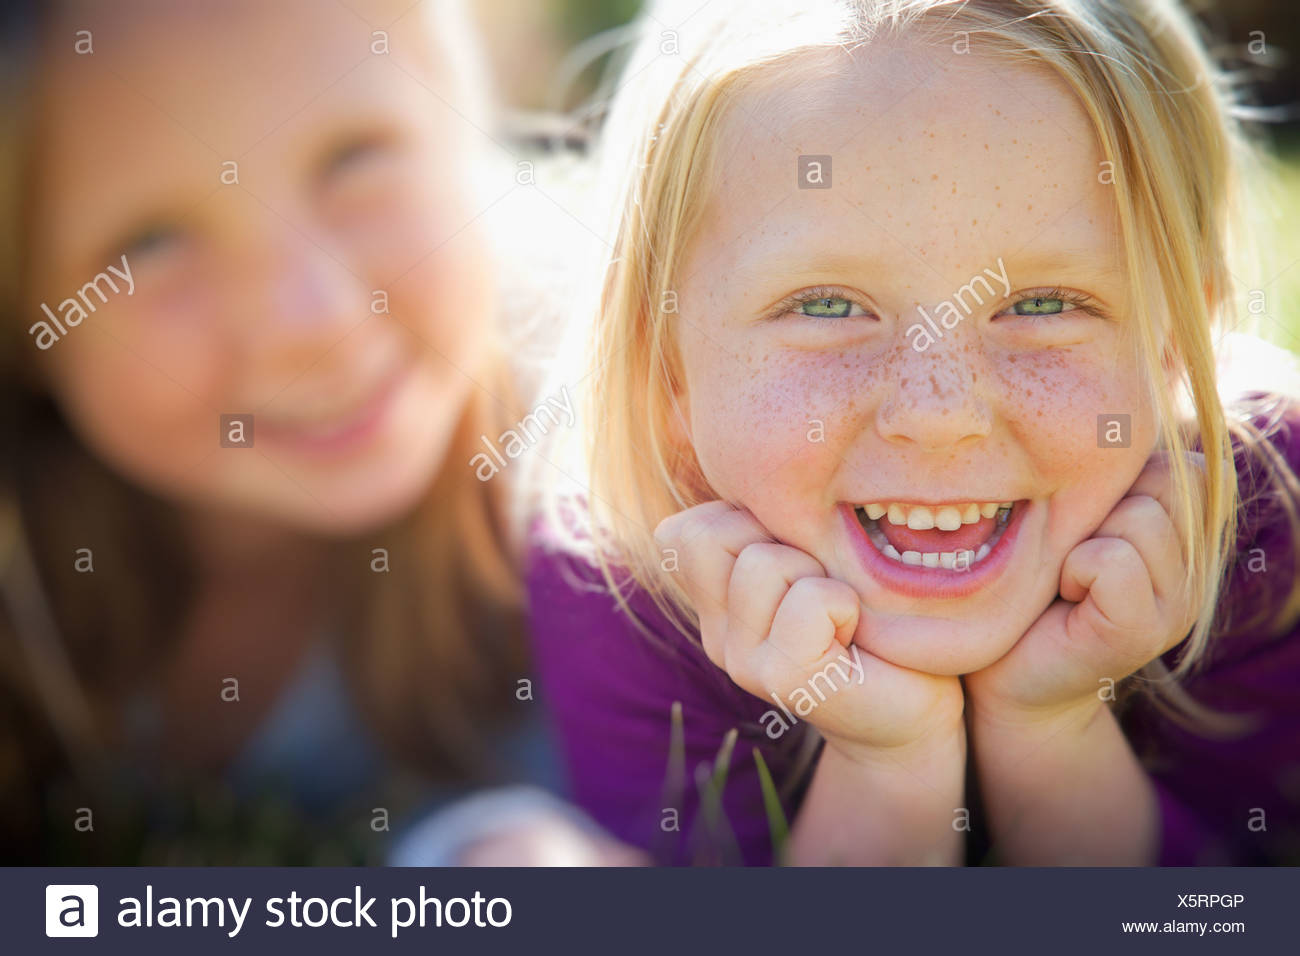 Two young girls, with blue eyes and blonde hair. Lying on the grass. Close up. - Stock Image